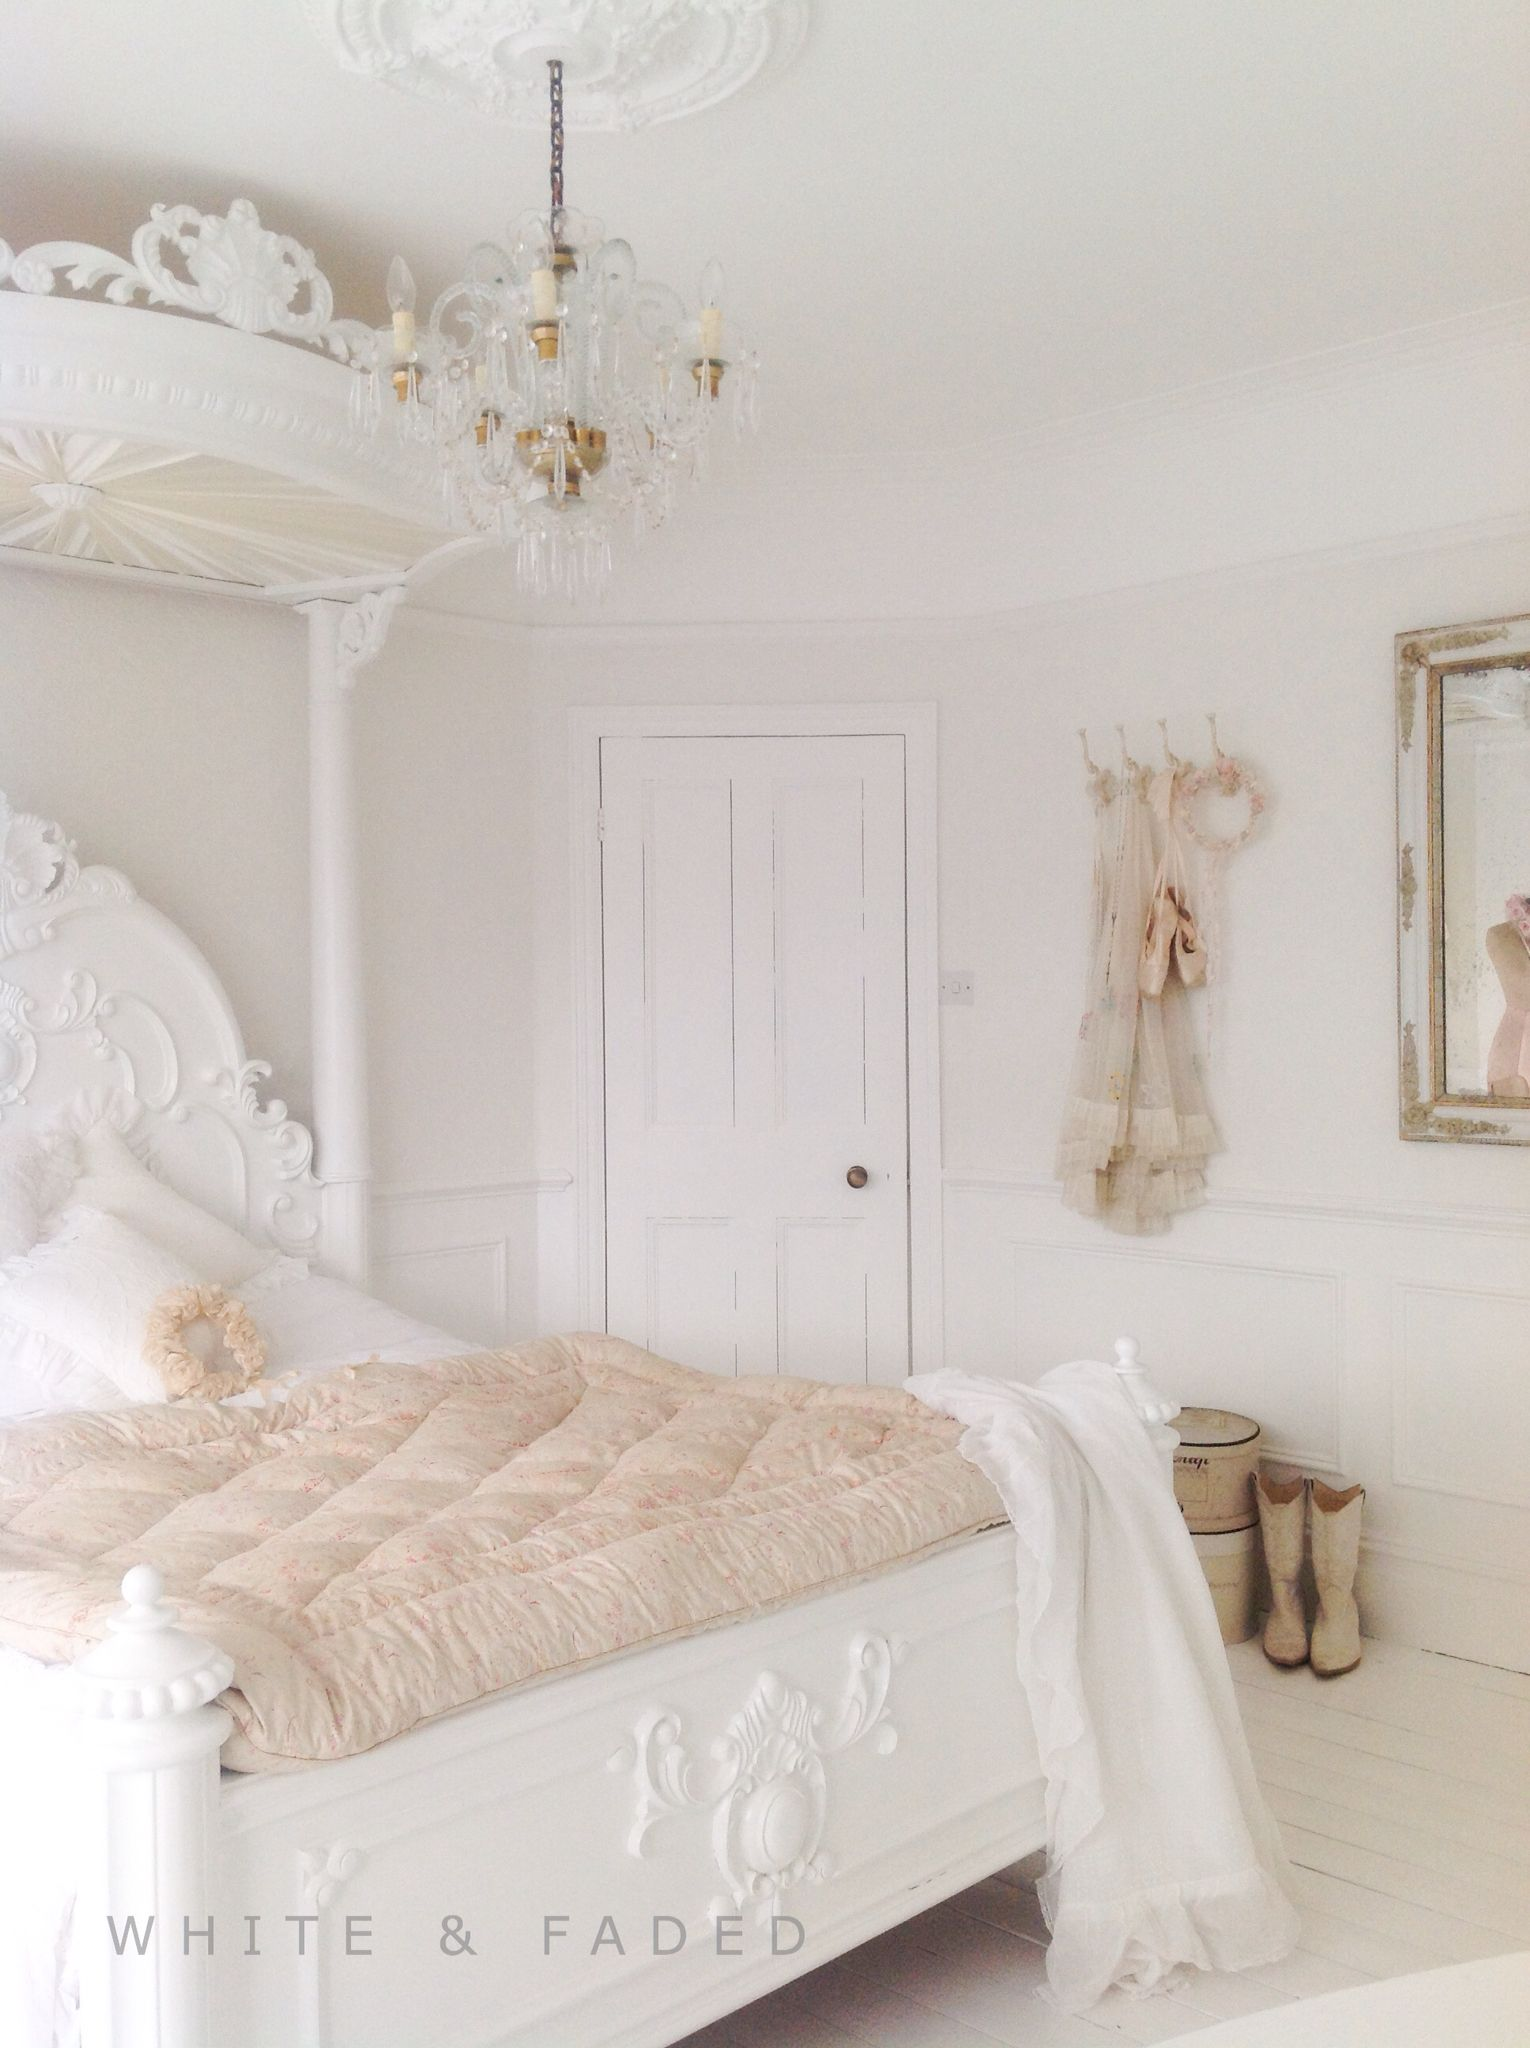 French White Bedroom Shabby Chic Decor Bedroom Chic Bedroom Decor Chic Bedroom Design